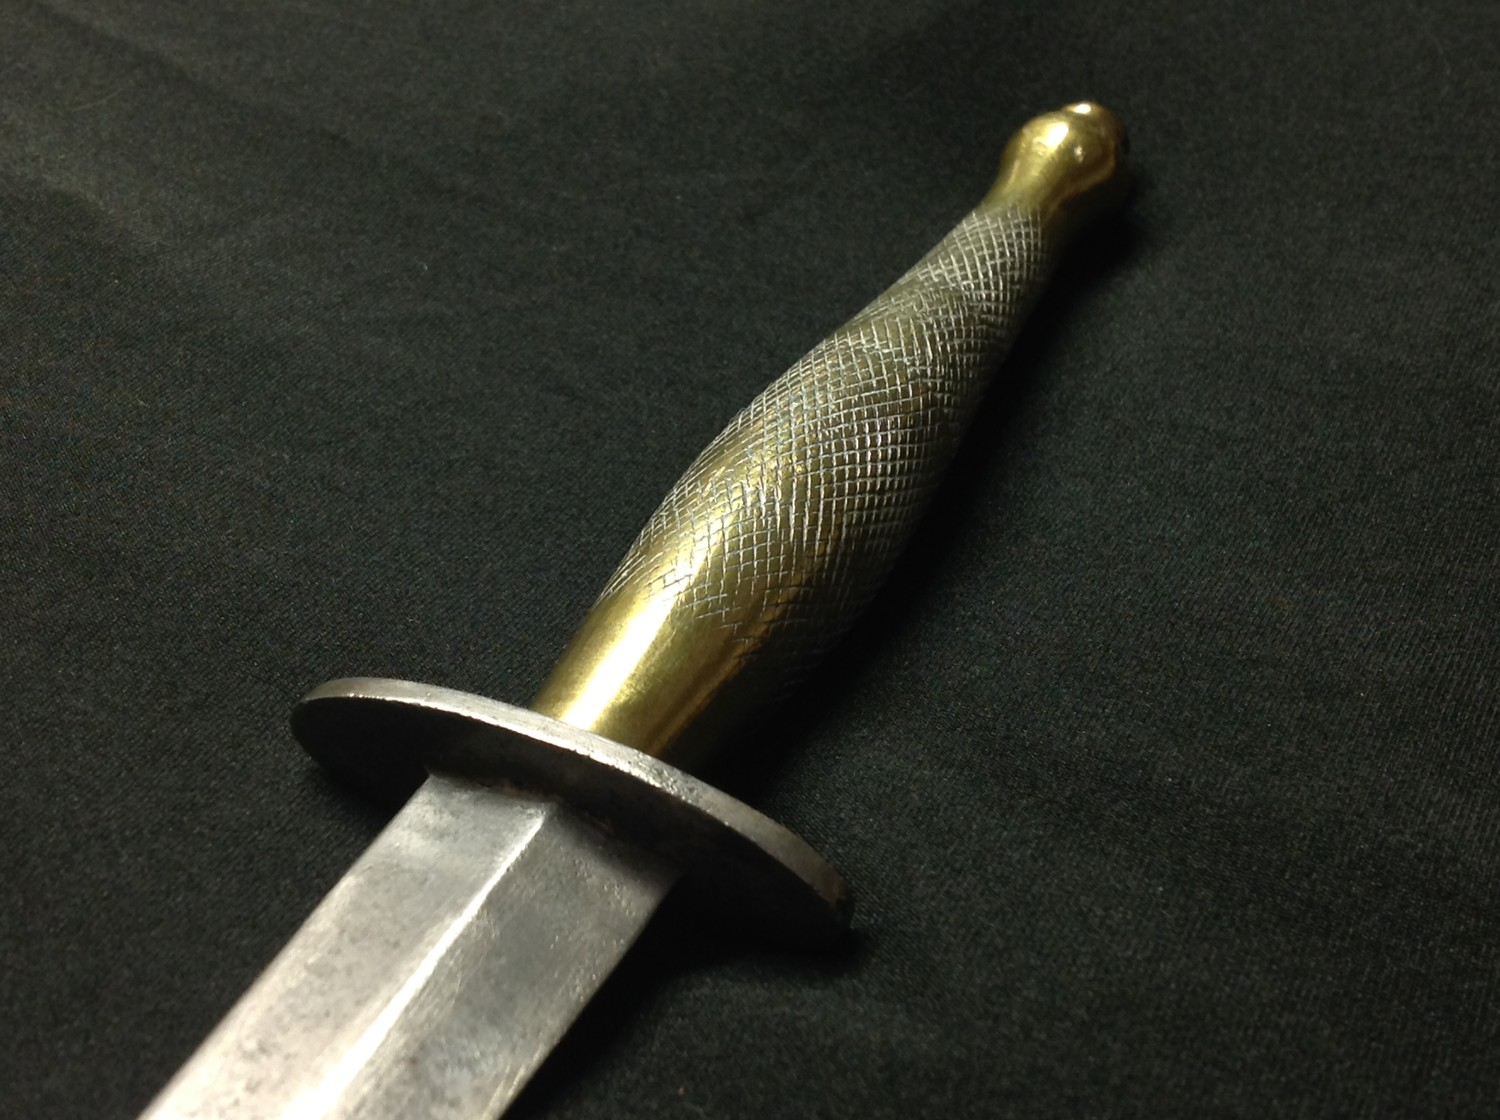 WW2 British 2nd pattern Fairbairn Sykes Fighting Knife with unmarked double edged blade, 145mm in - Image 9 of 10